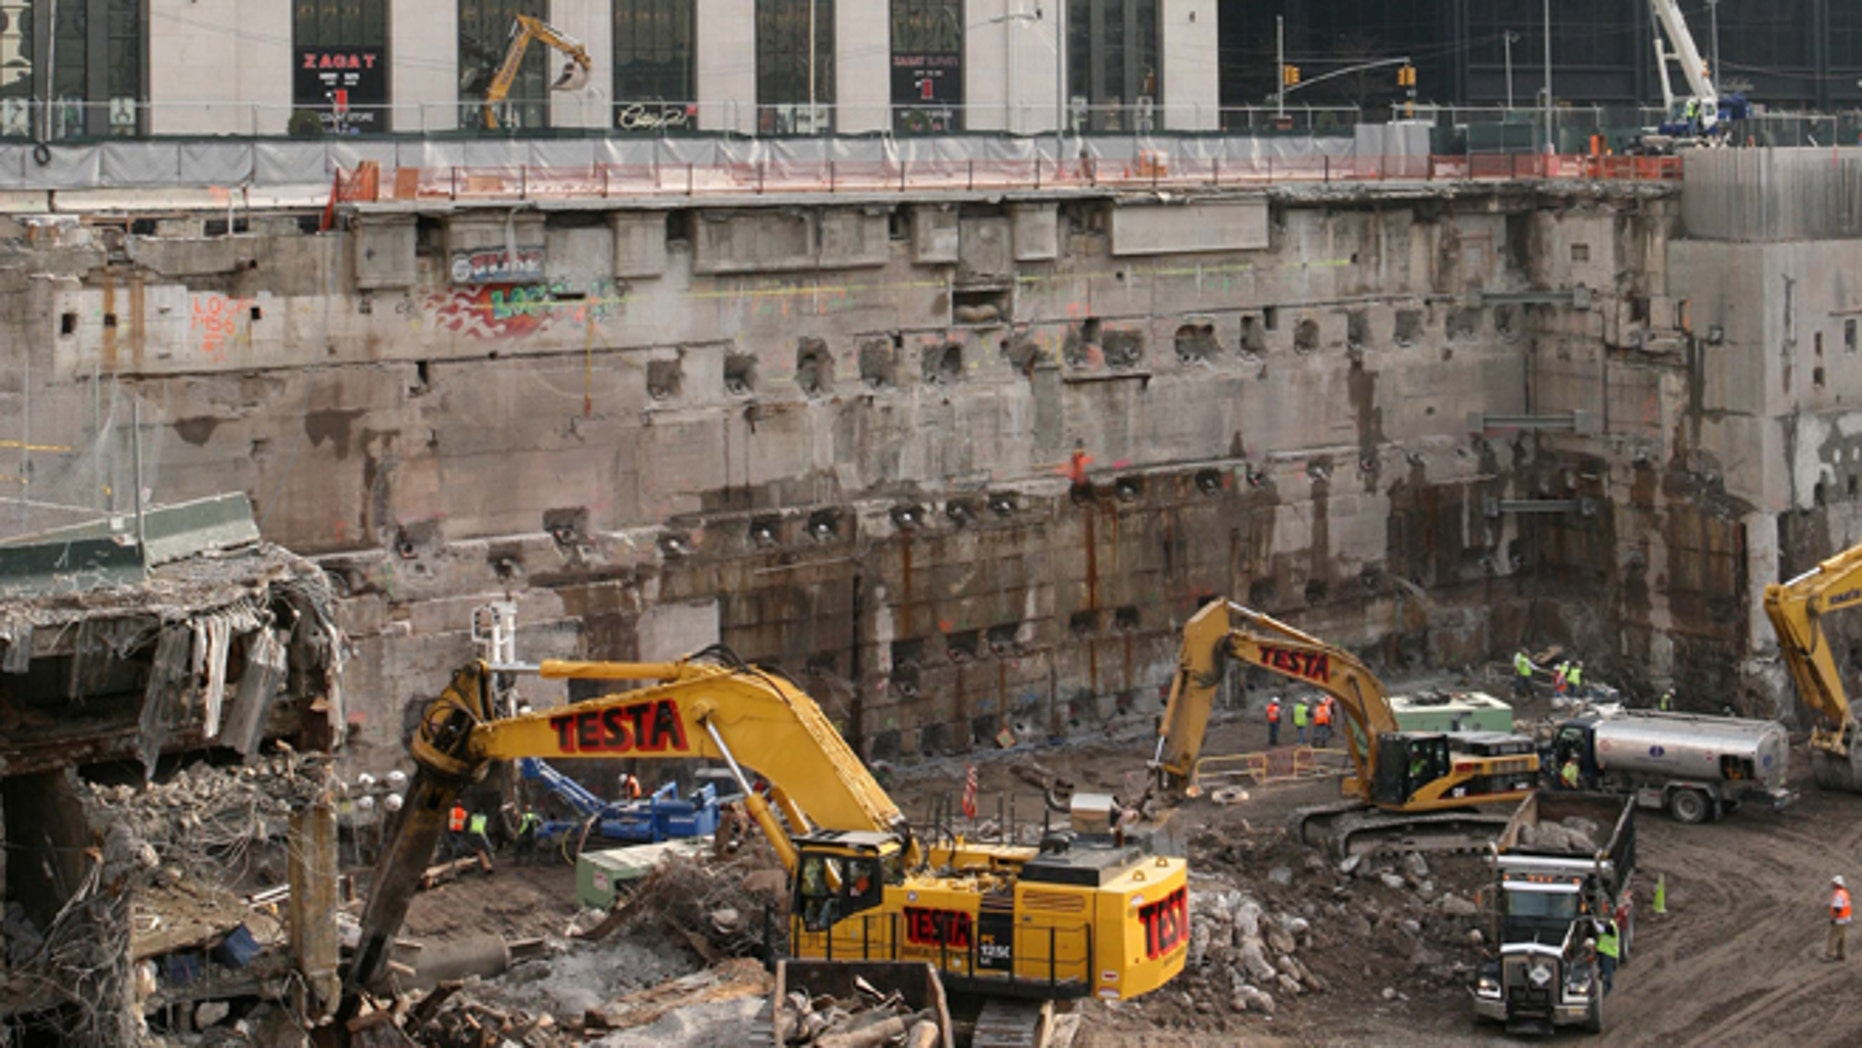 FILE - Construction workers and equipment excavate the southeastern corner of the World Trade Center site on in this Jan. 8, 2008 file photo taken in New York.